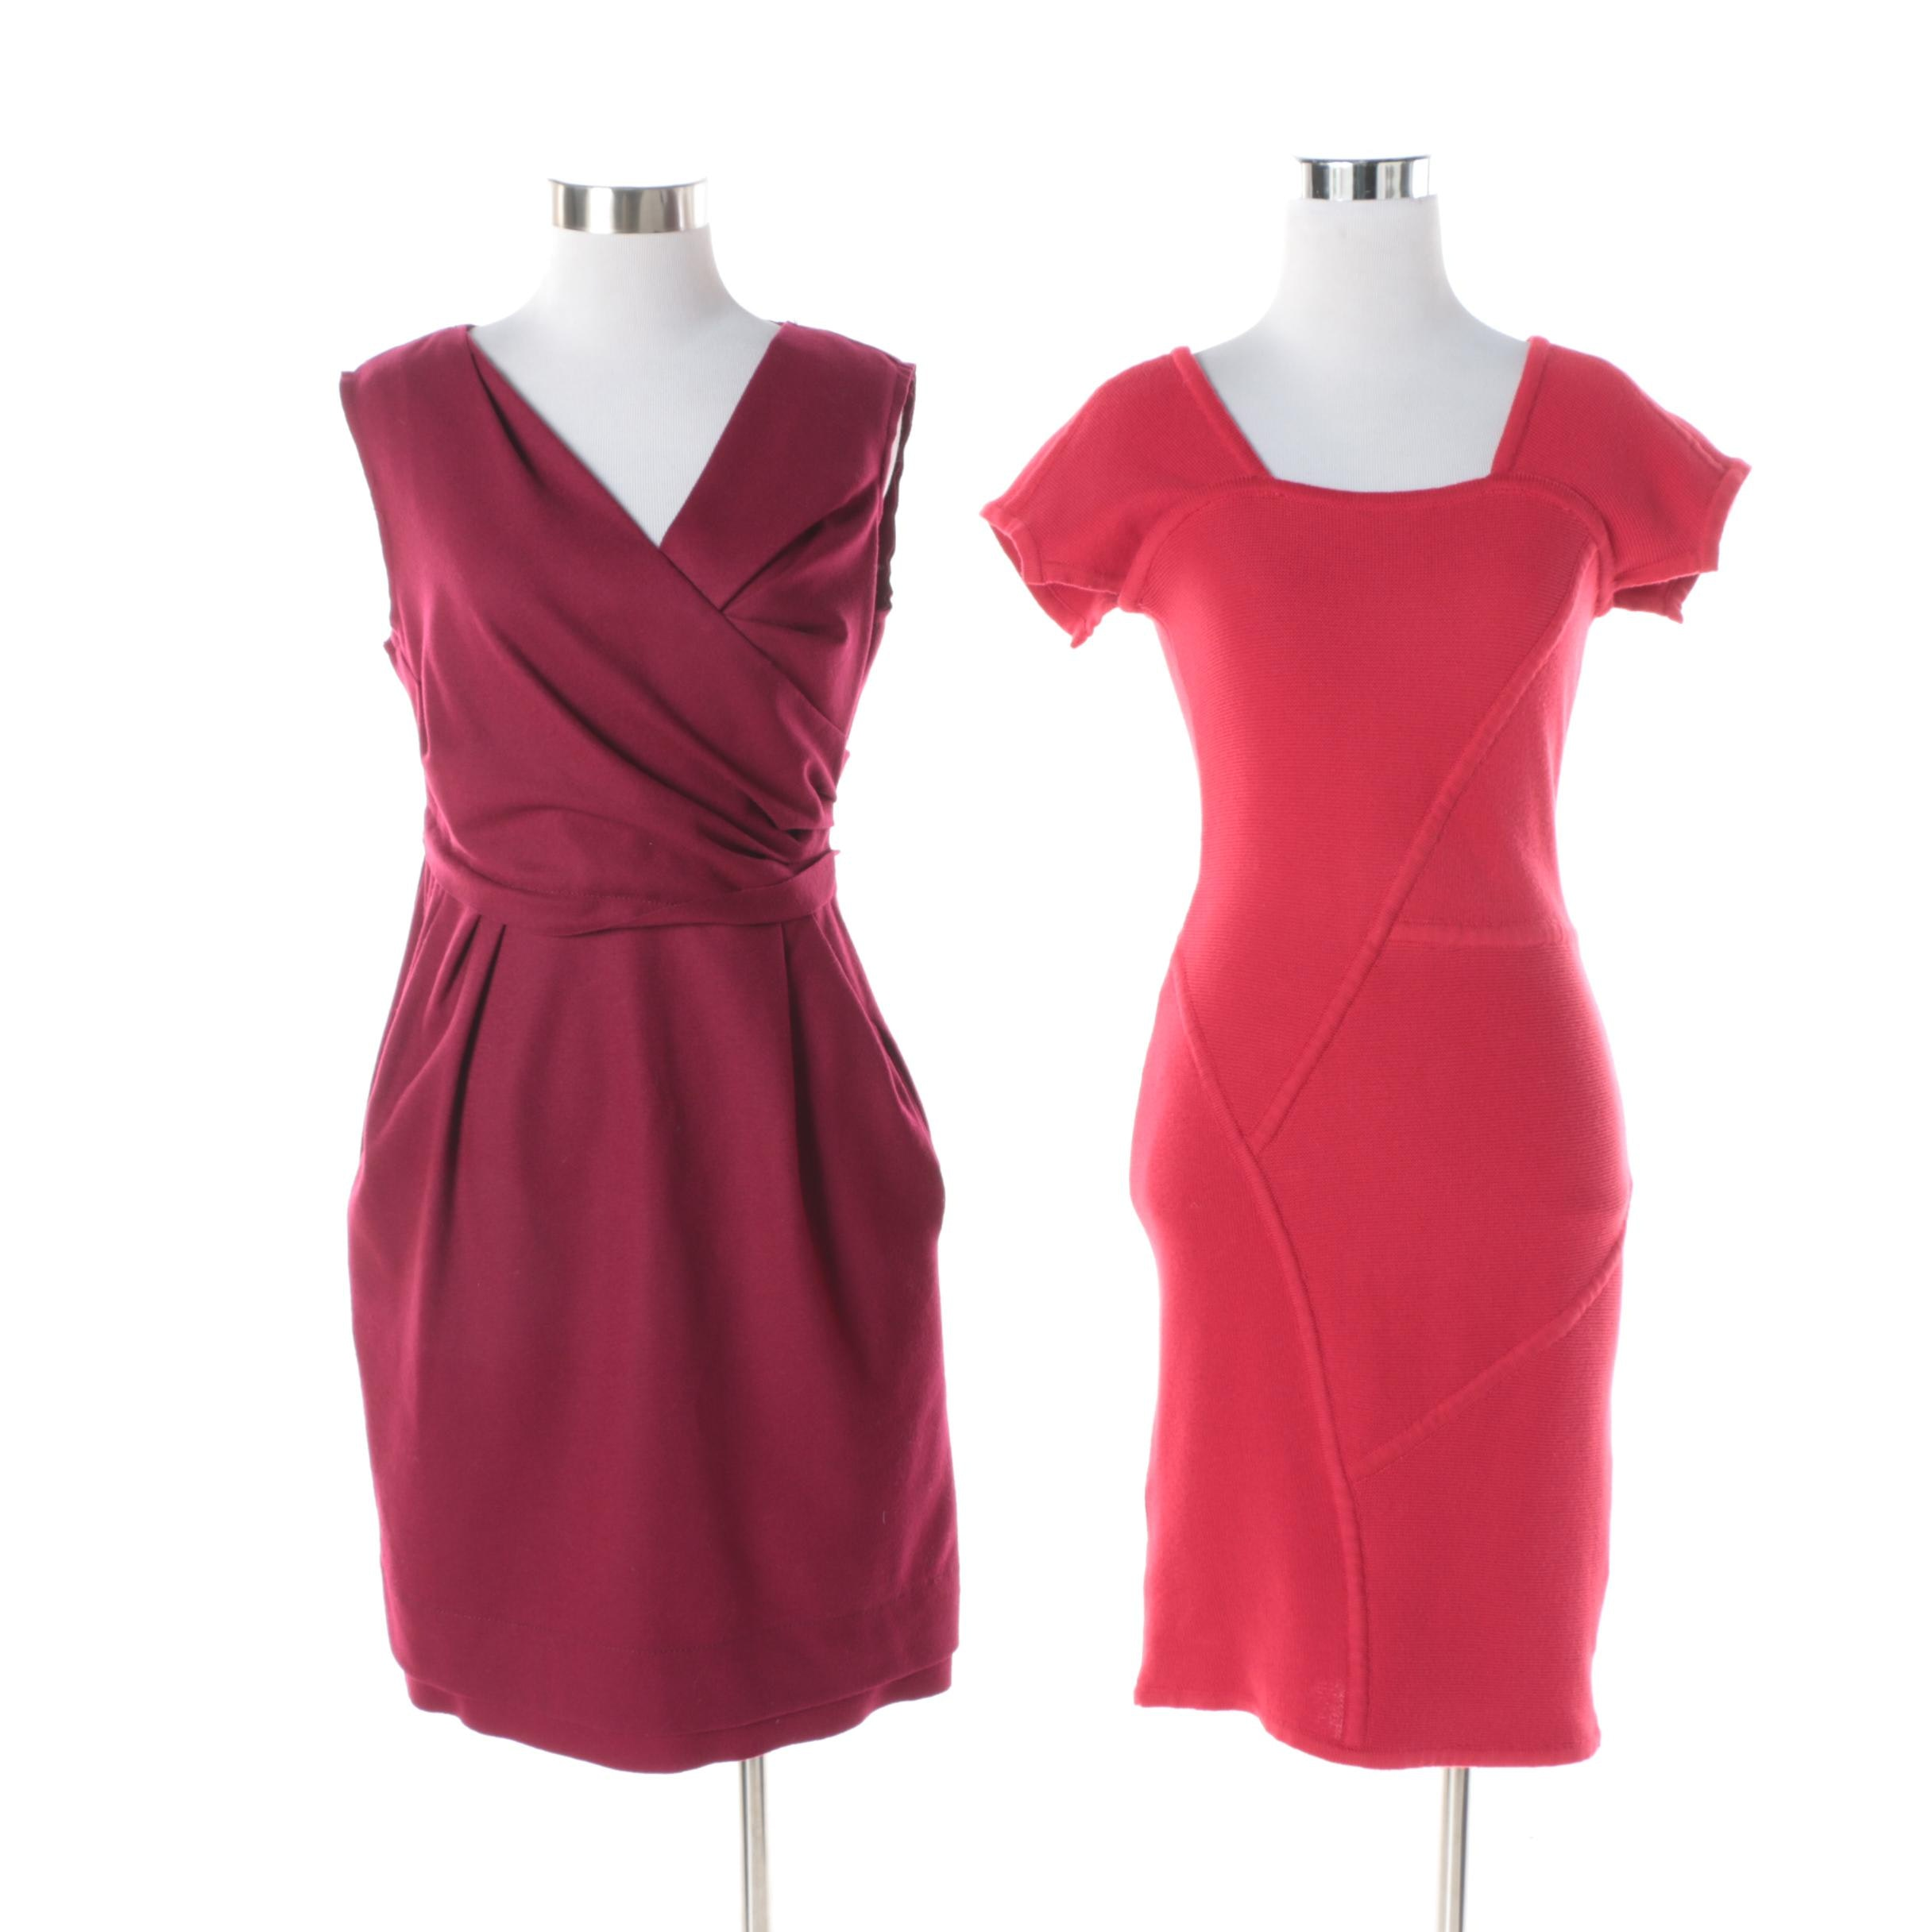 Diane von Furstenberg and Yigal Azrouël Dresses